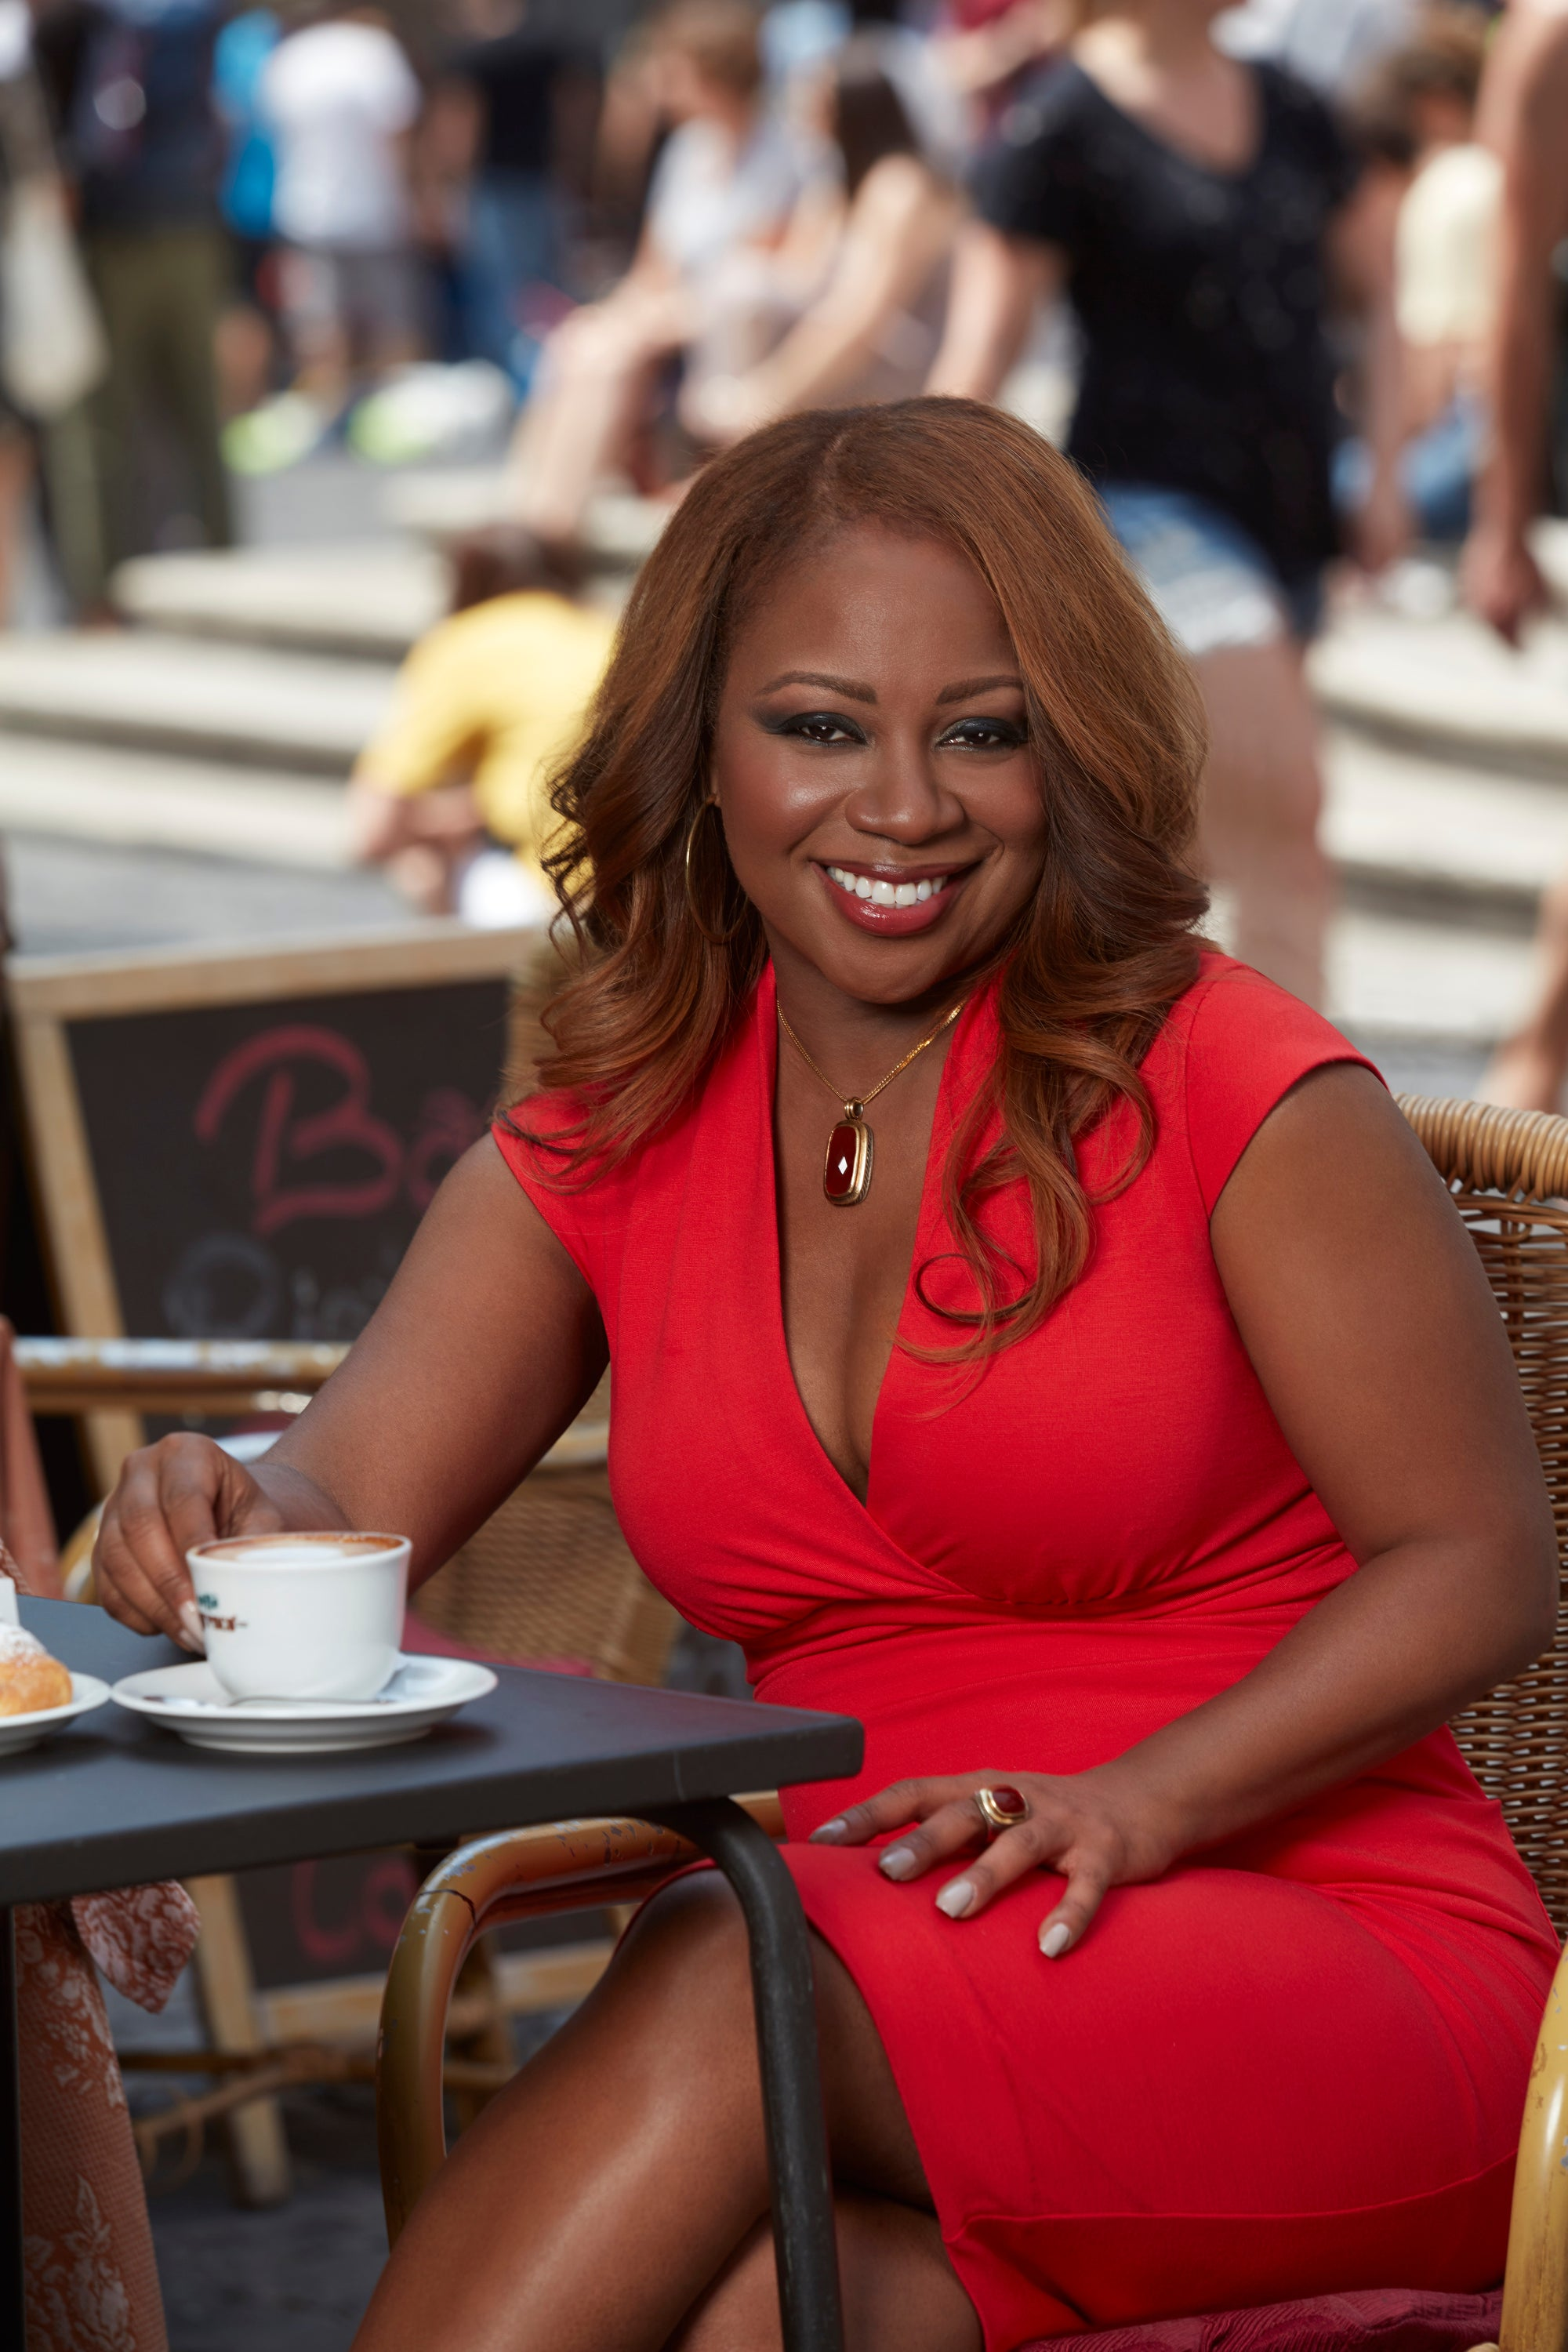 Gina Neely Hasn't Talked To Ex-Husband Pat Neely Since The Day She Left Him: 'I Guess He's Well'